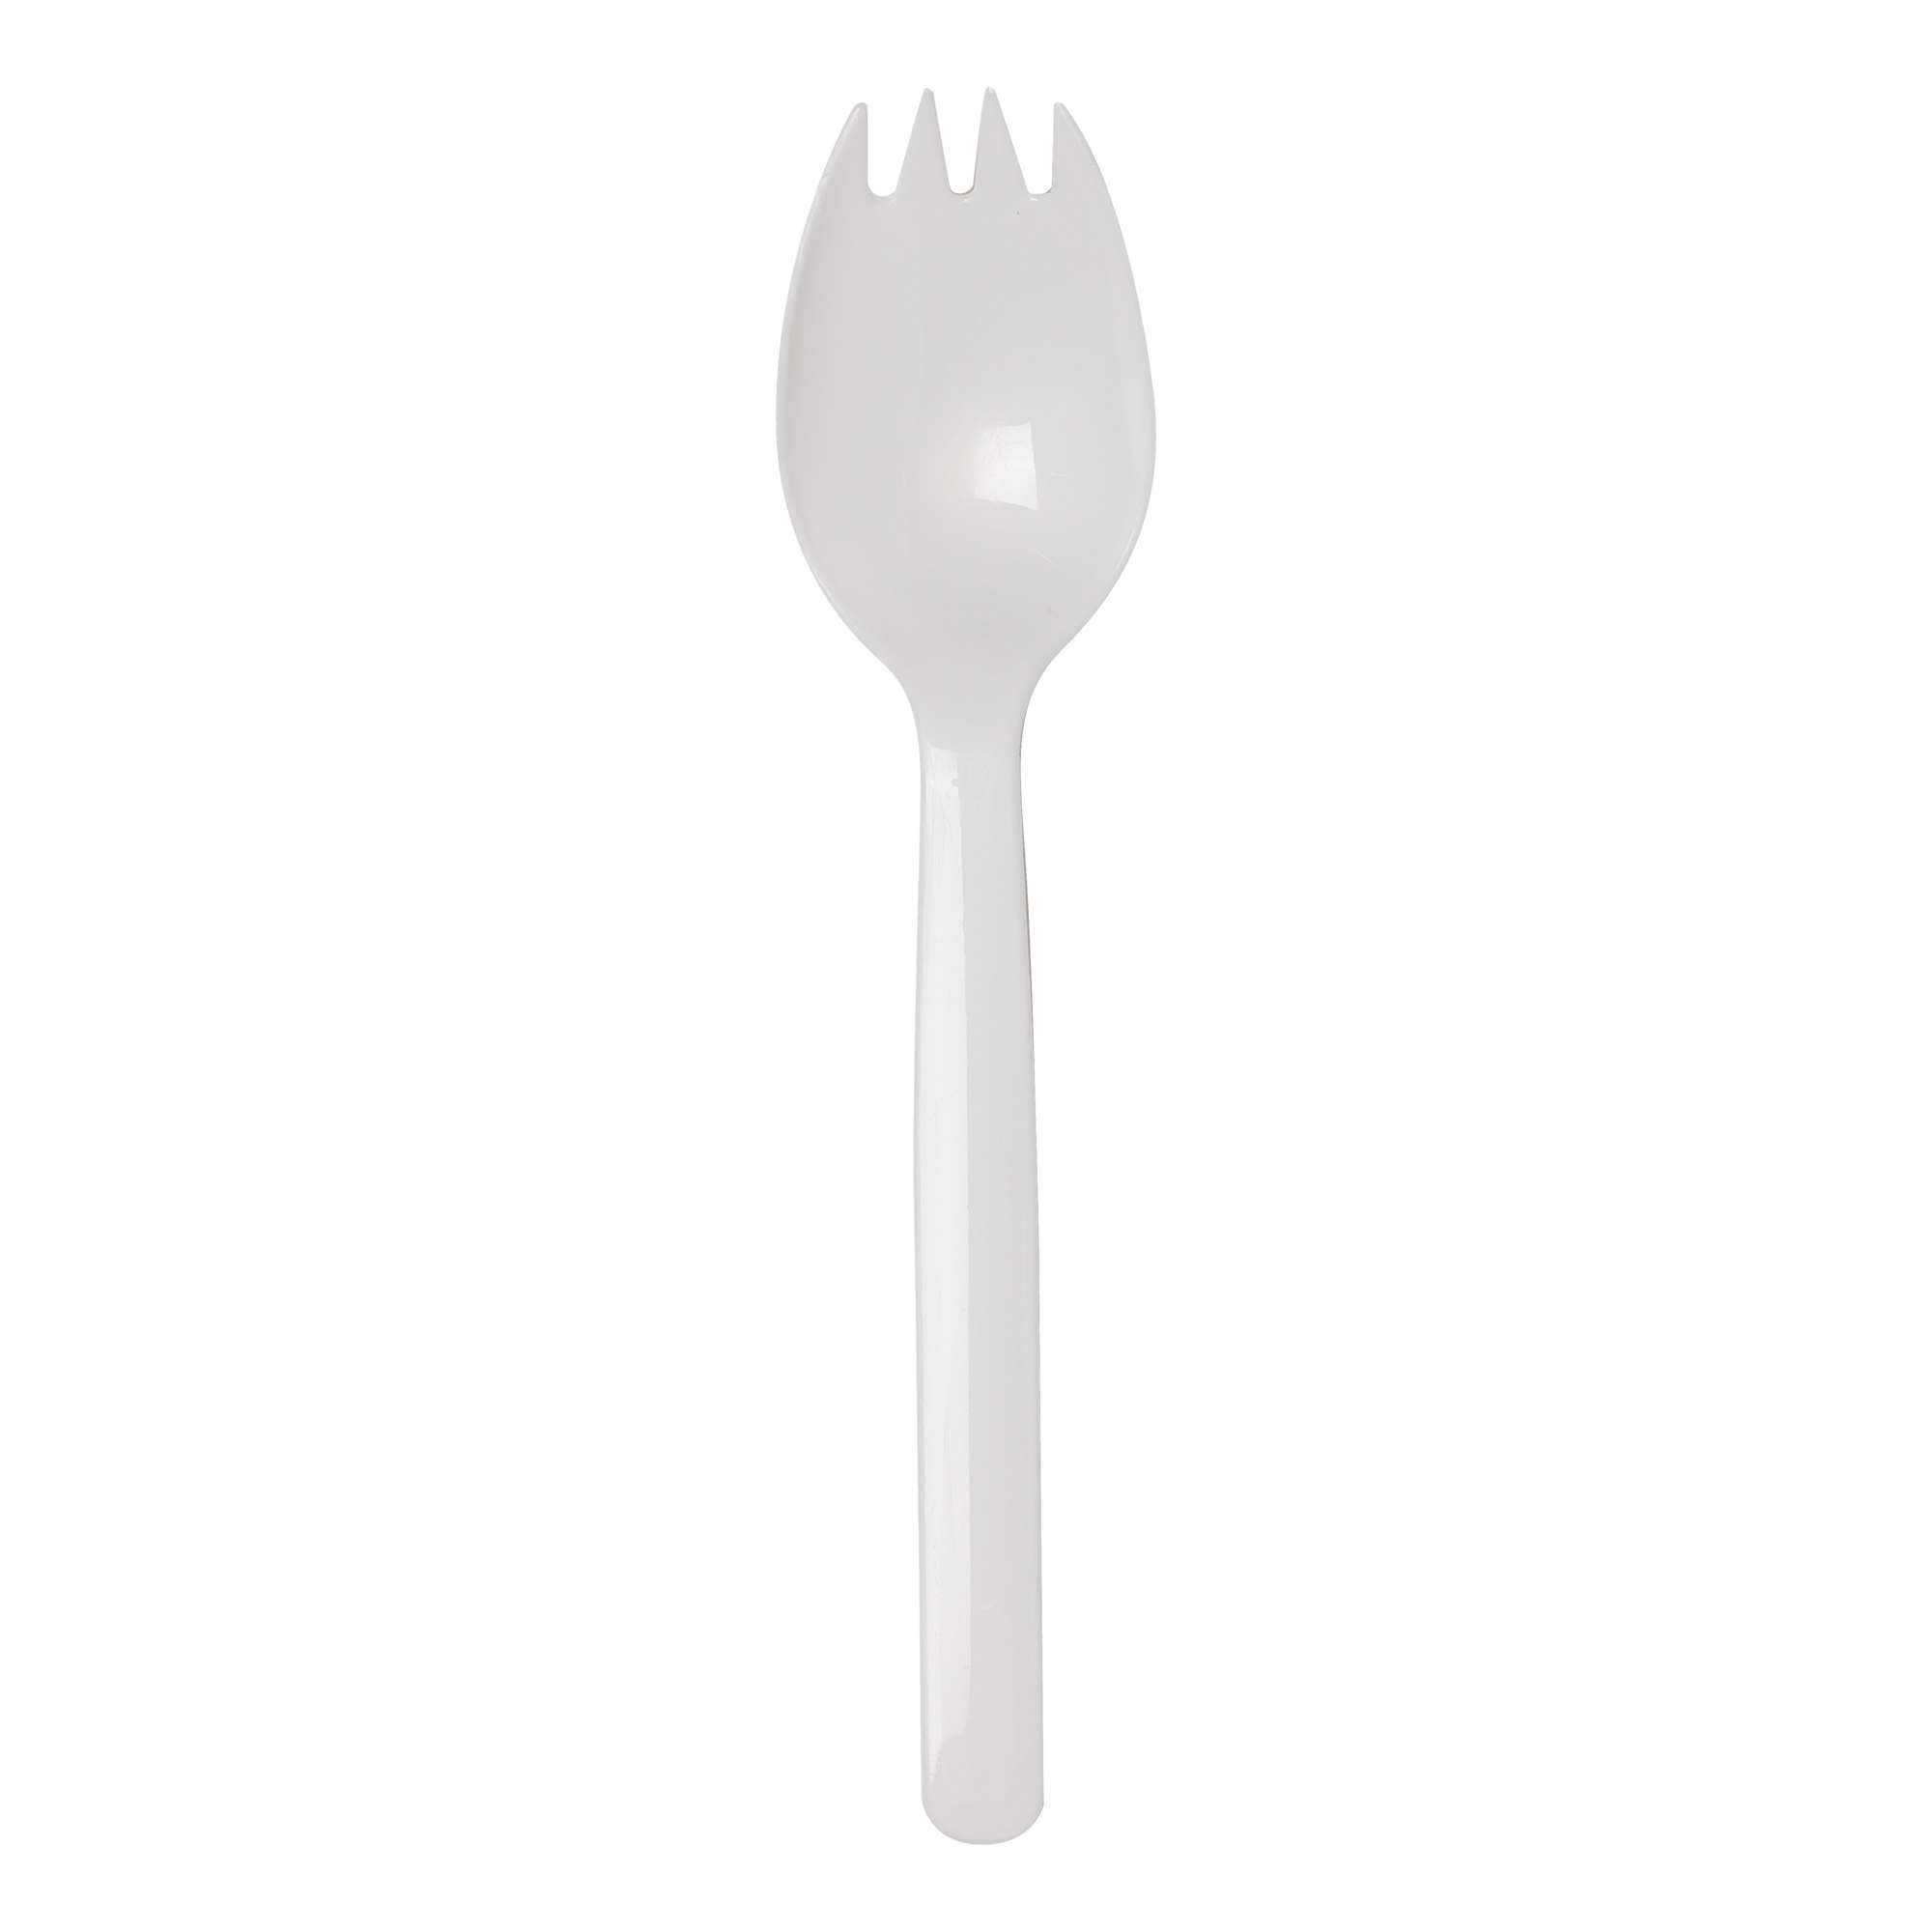 Medium Weight Sporks Bulk 1000ct thumbnail